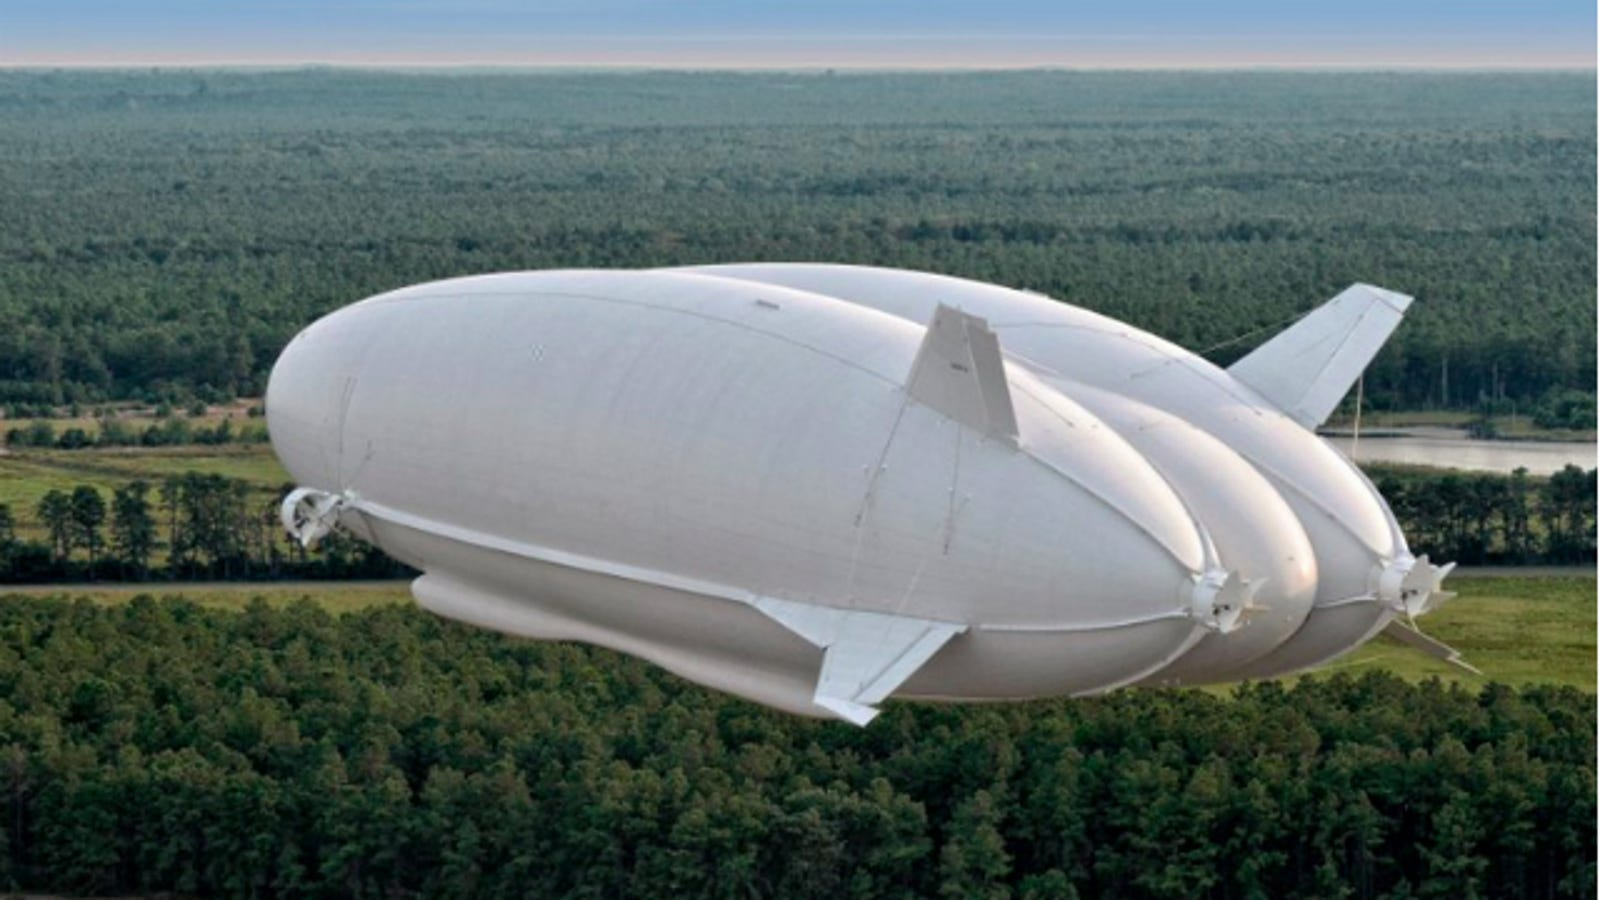 The World's Biggest Aircraft Could Launch a New Age of Airships